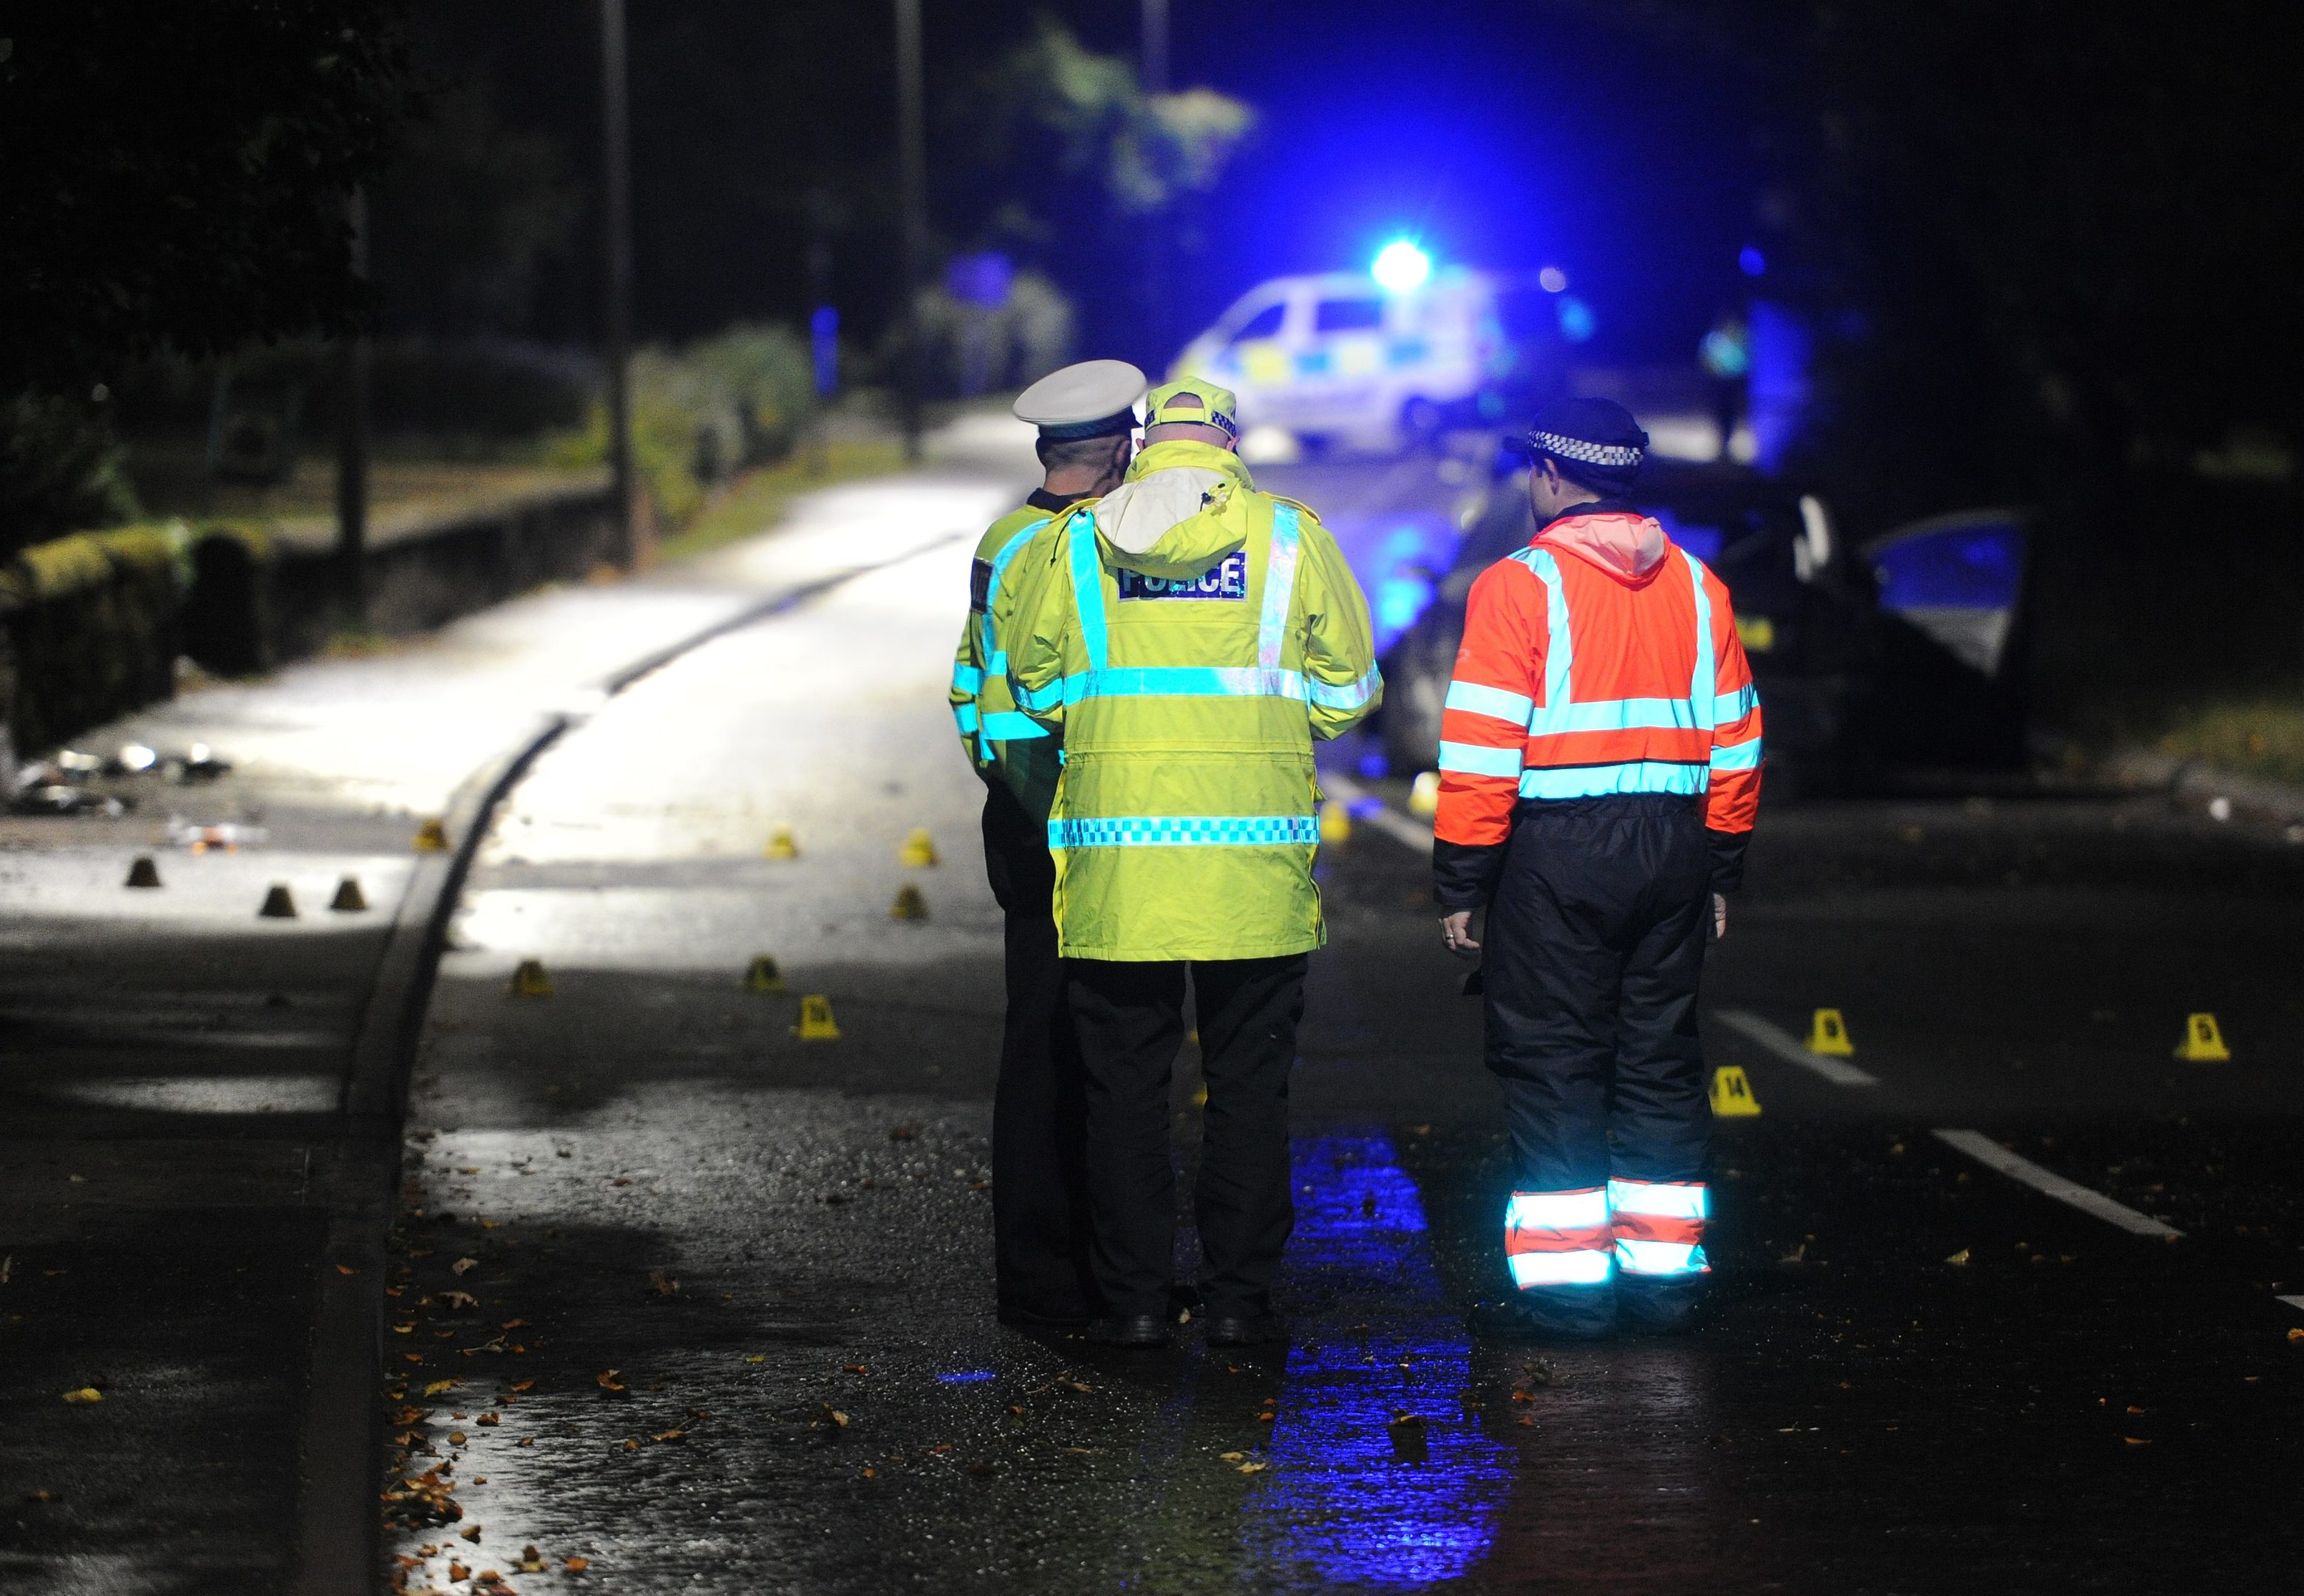 Police accident investigators at the scene of the tragedy.